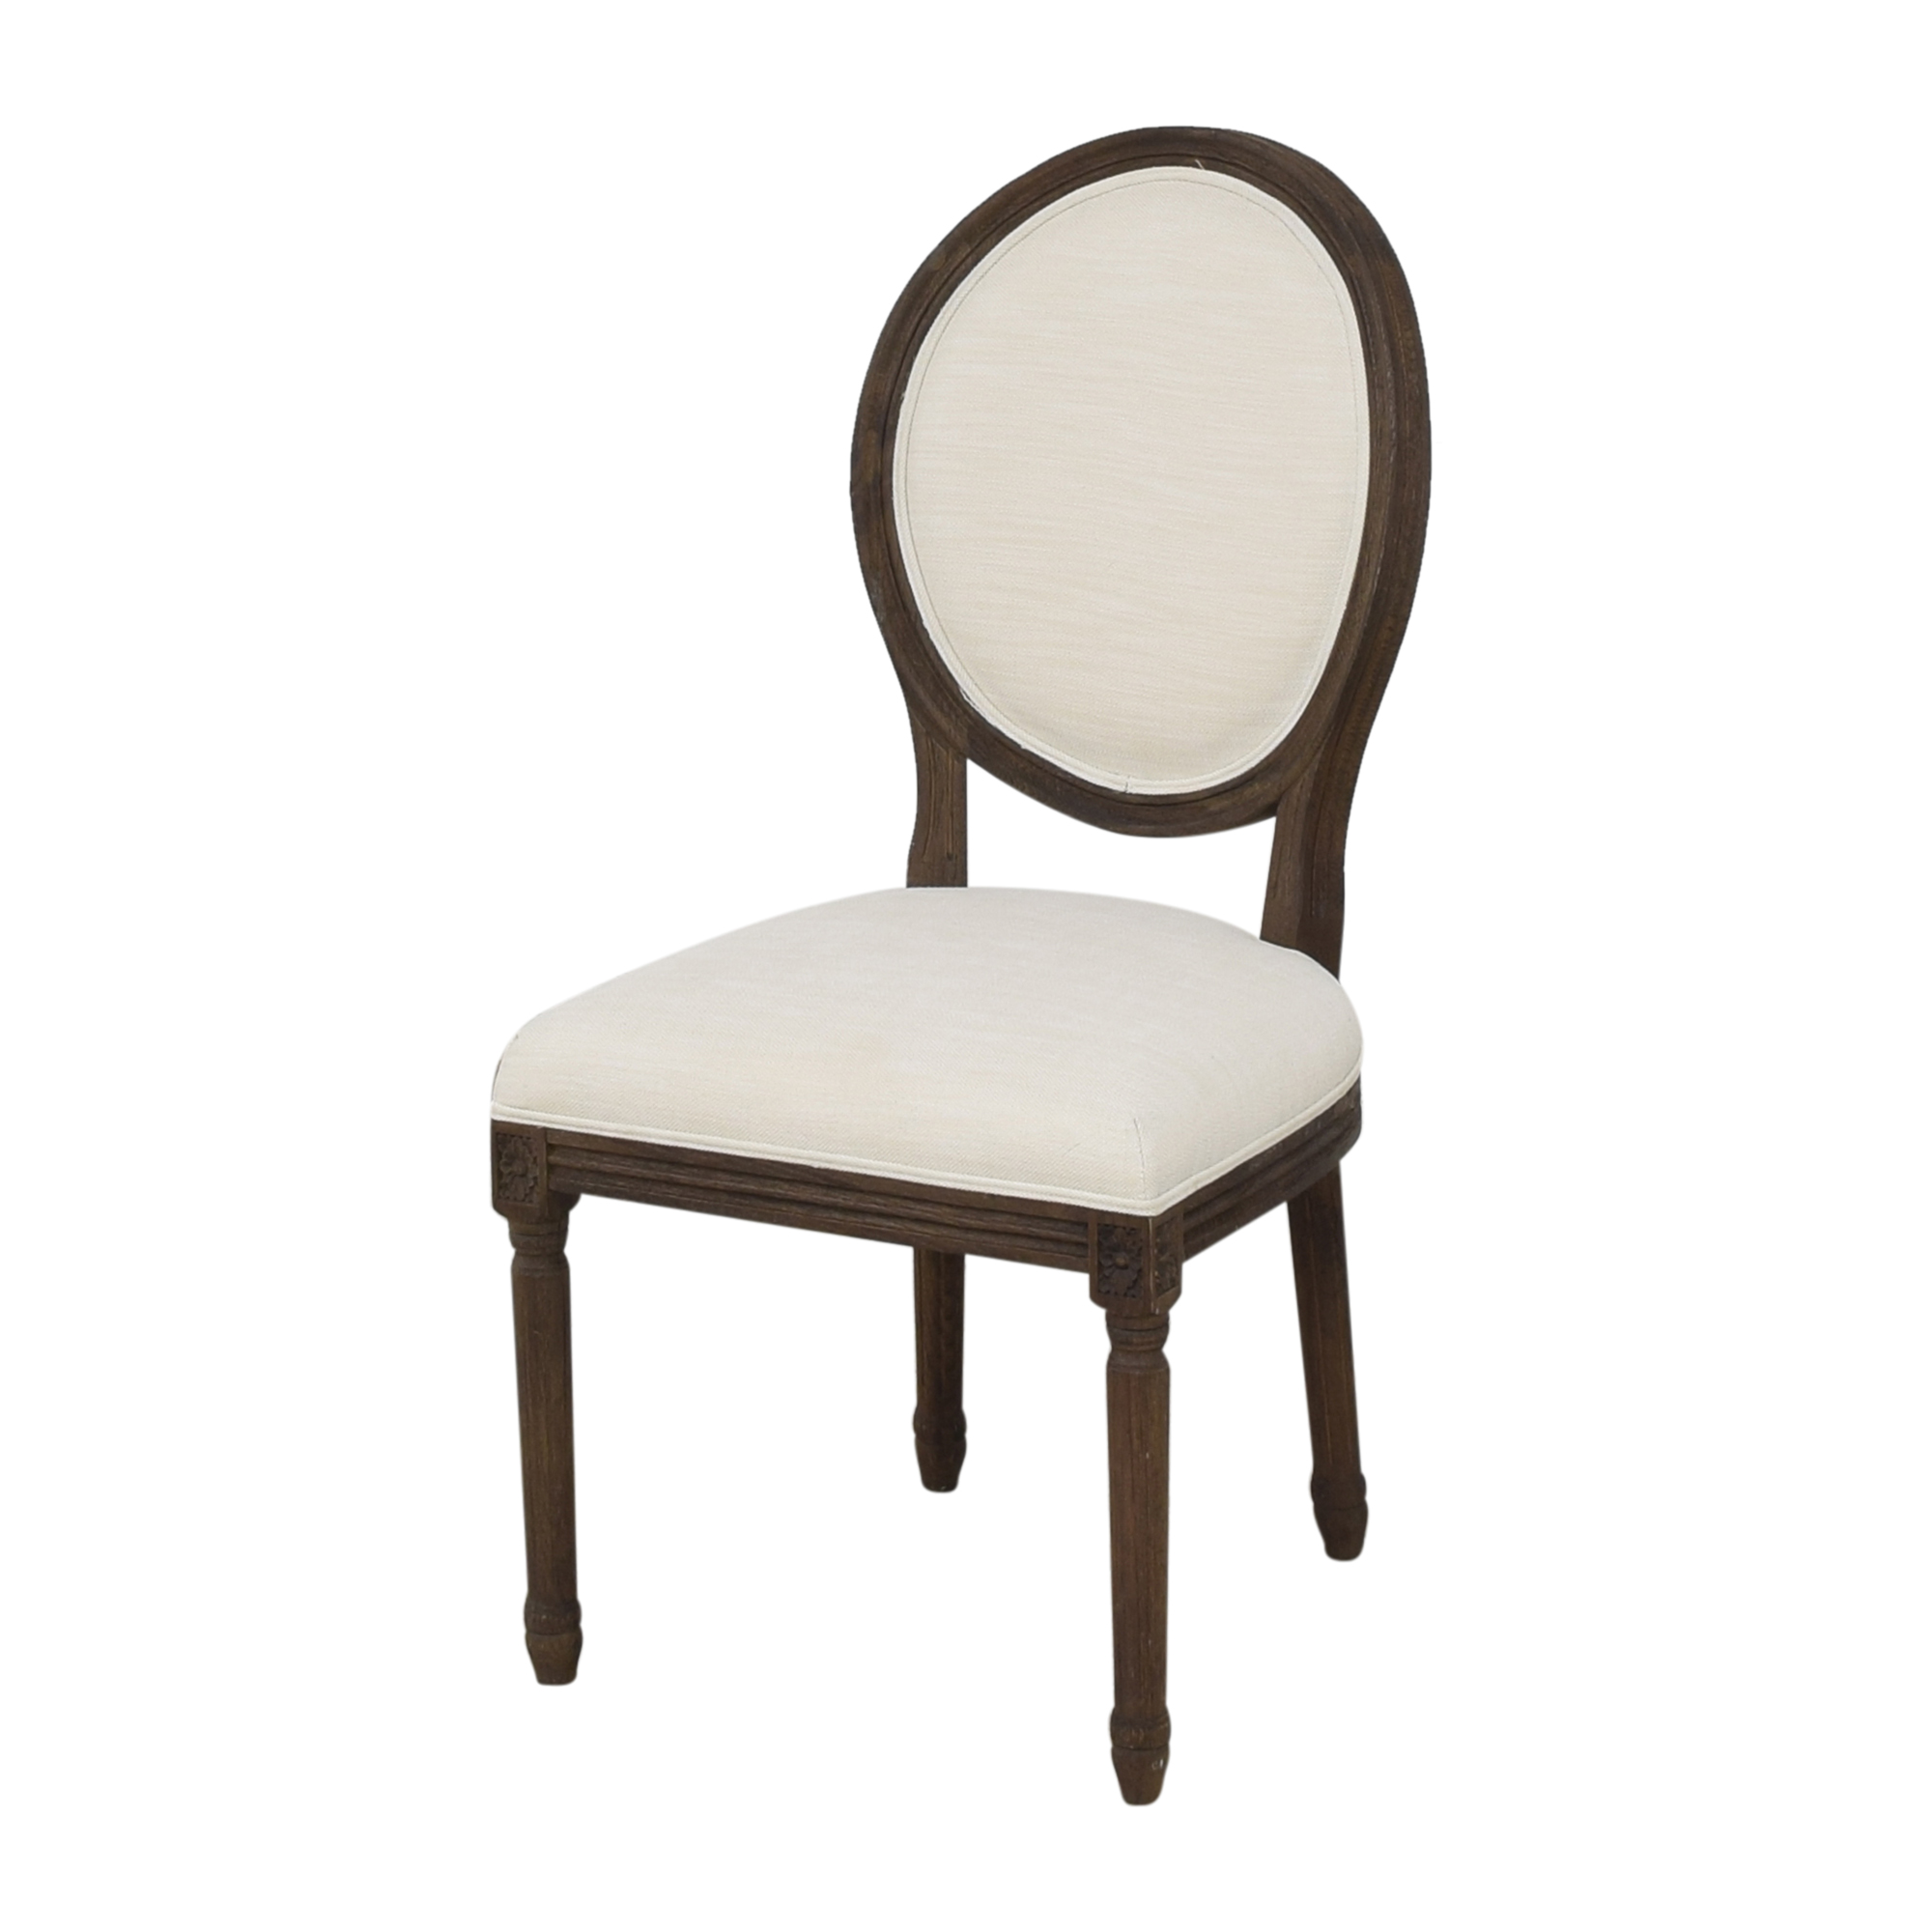 Restoration Hardware Restoration Hardware Vintage French Round Side Dining Chairs Chairs